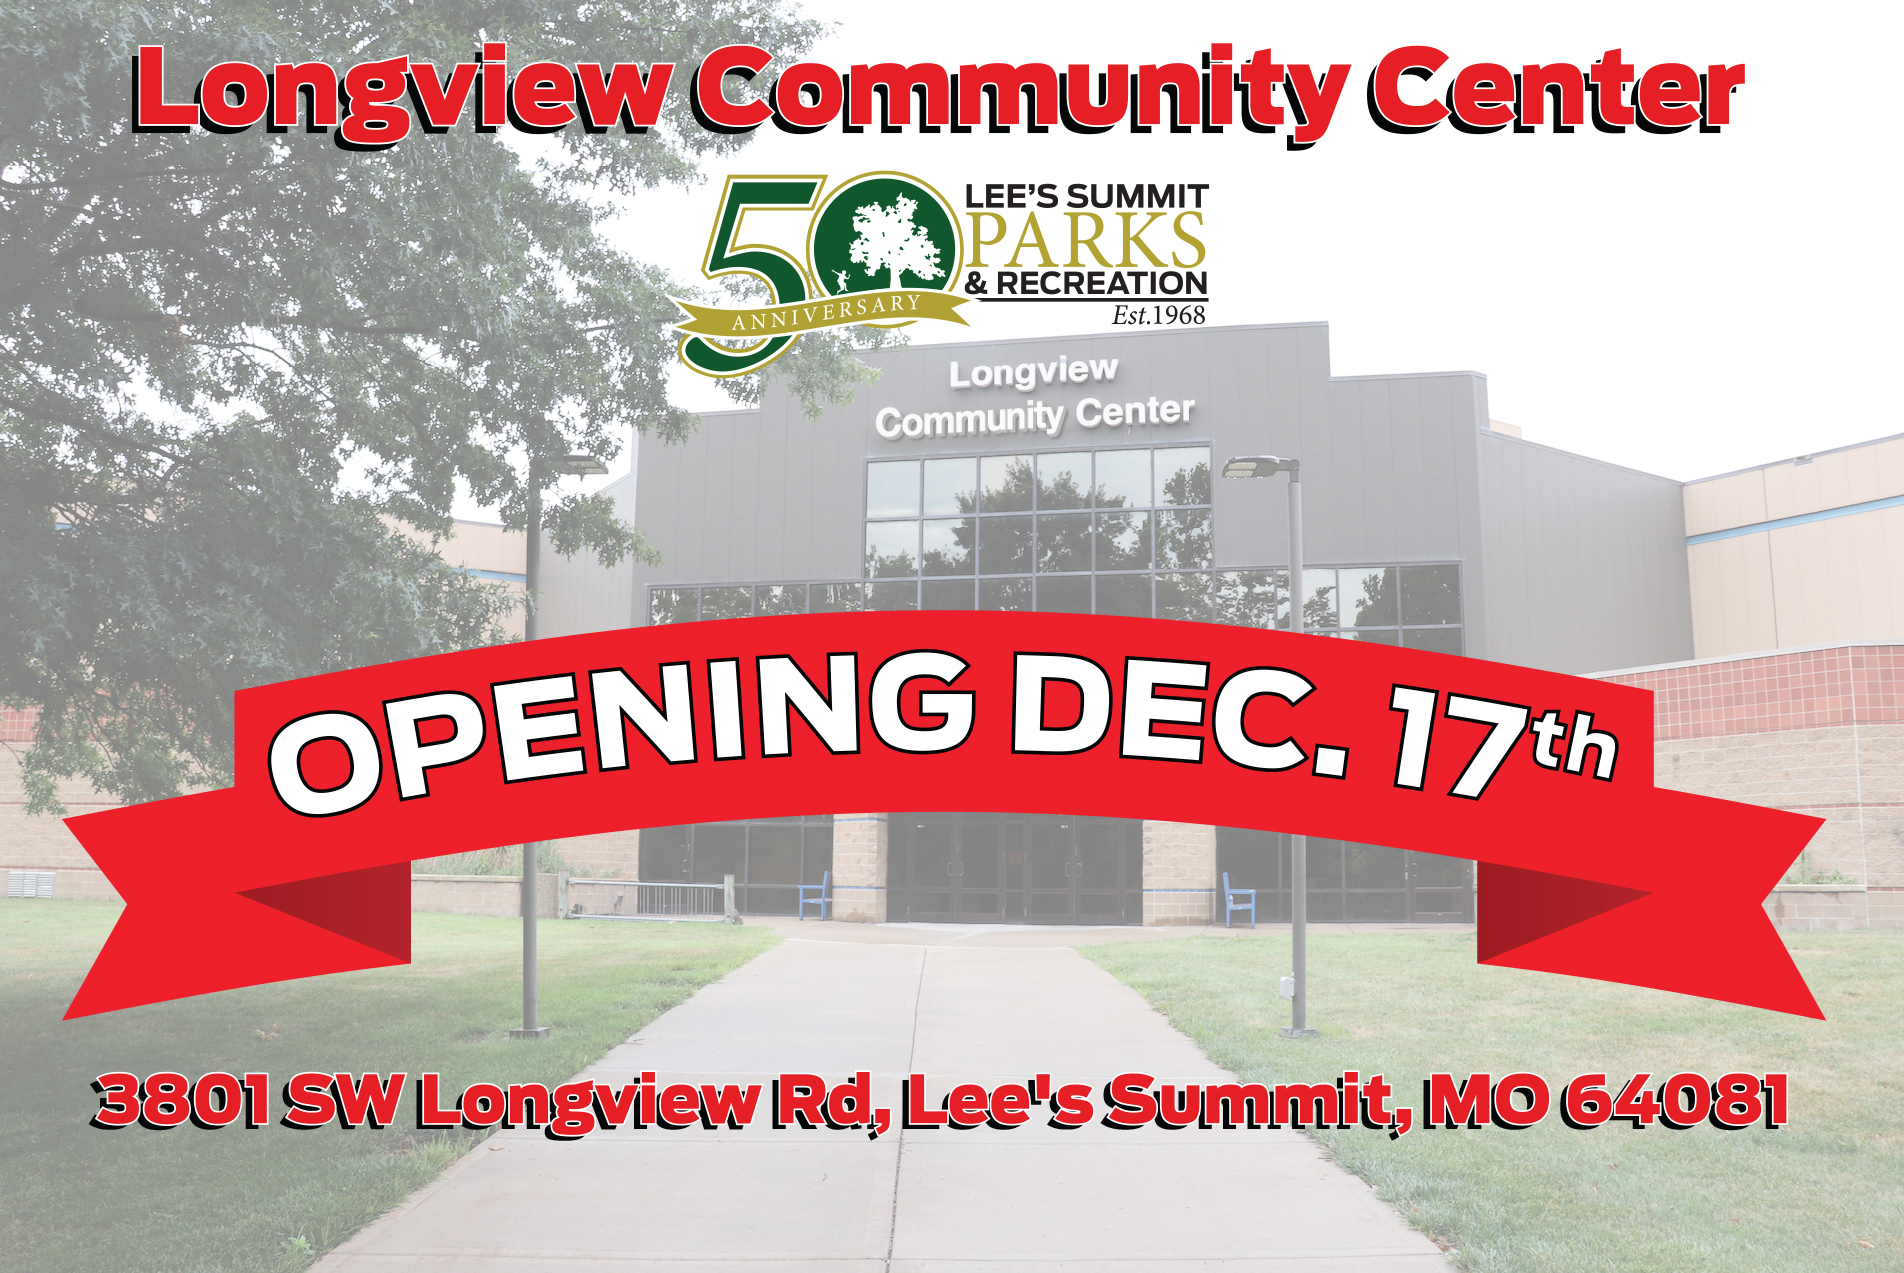 Image of Longview Community Center Grand Opening Announcement